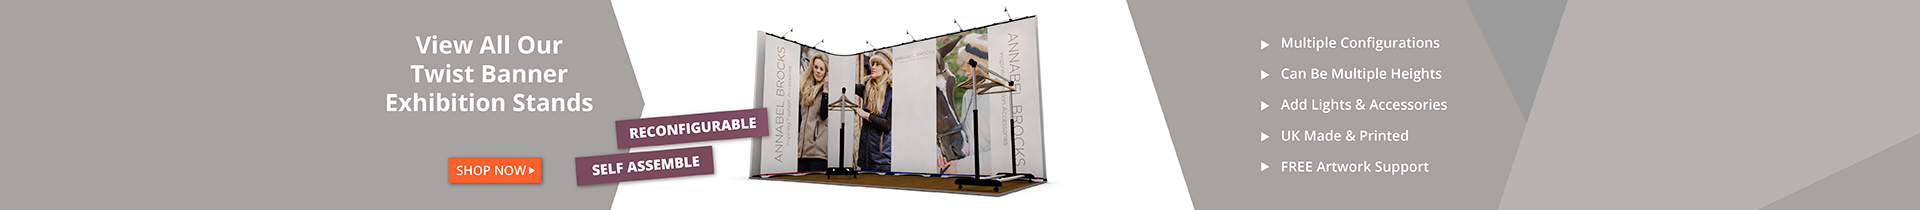 Twist Banners Exhibition Stands